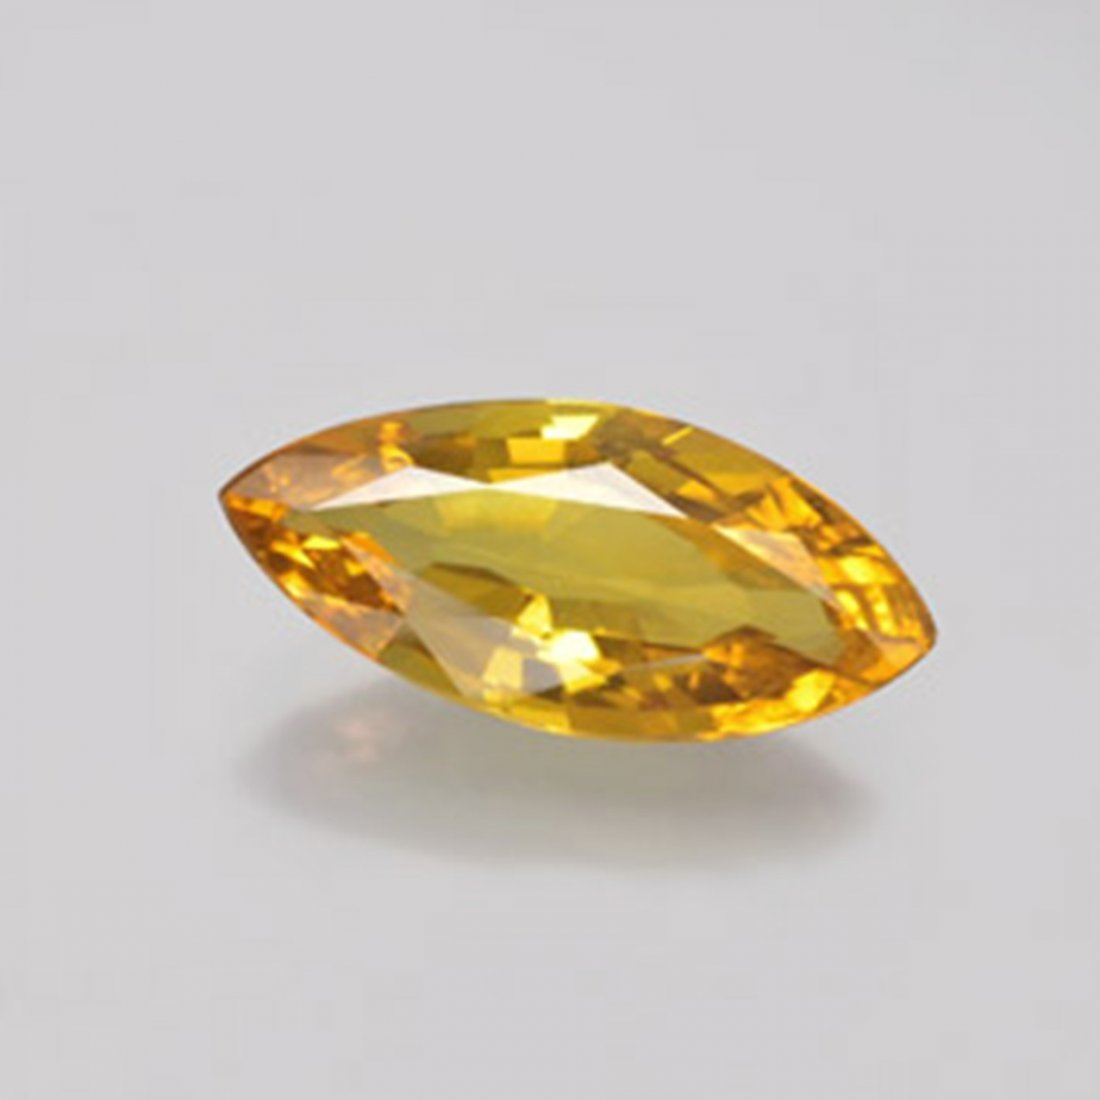 Loose Yellow Golden Sapphire Marquise 1.51Ct 11x5.7x3mm